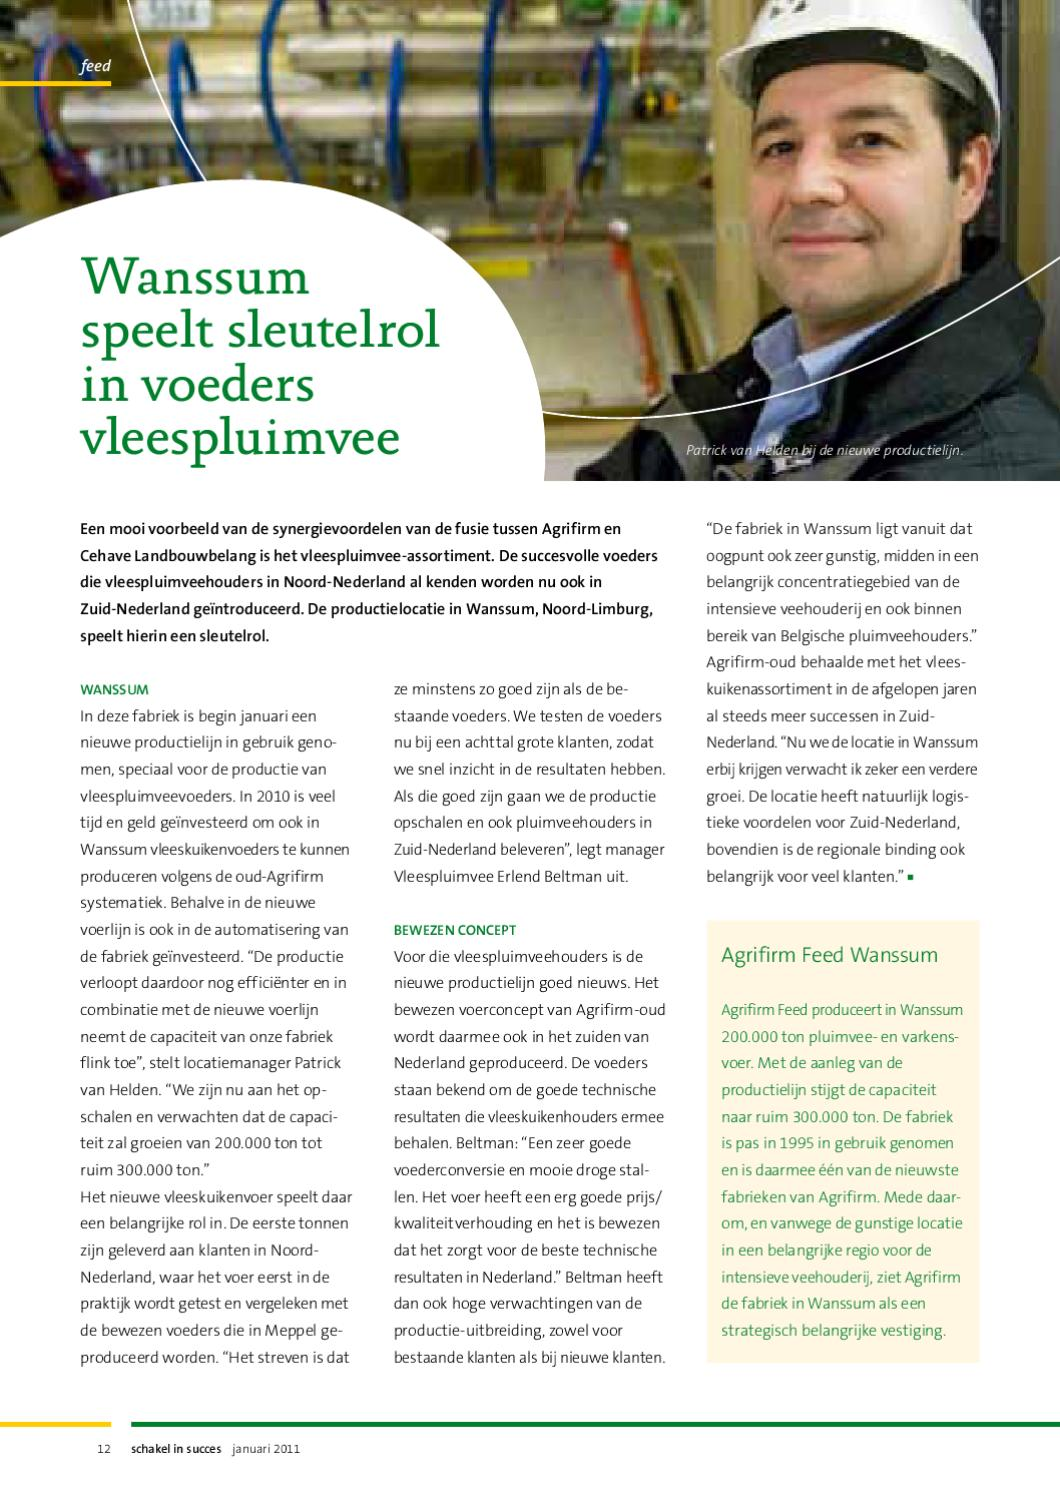 2baef65d9e6 Schakel in succes nr. 1 - januari 2011 by Agrifirm - issuu